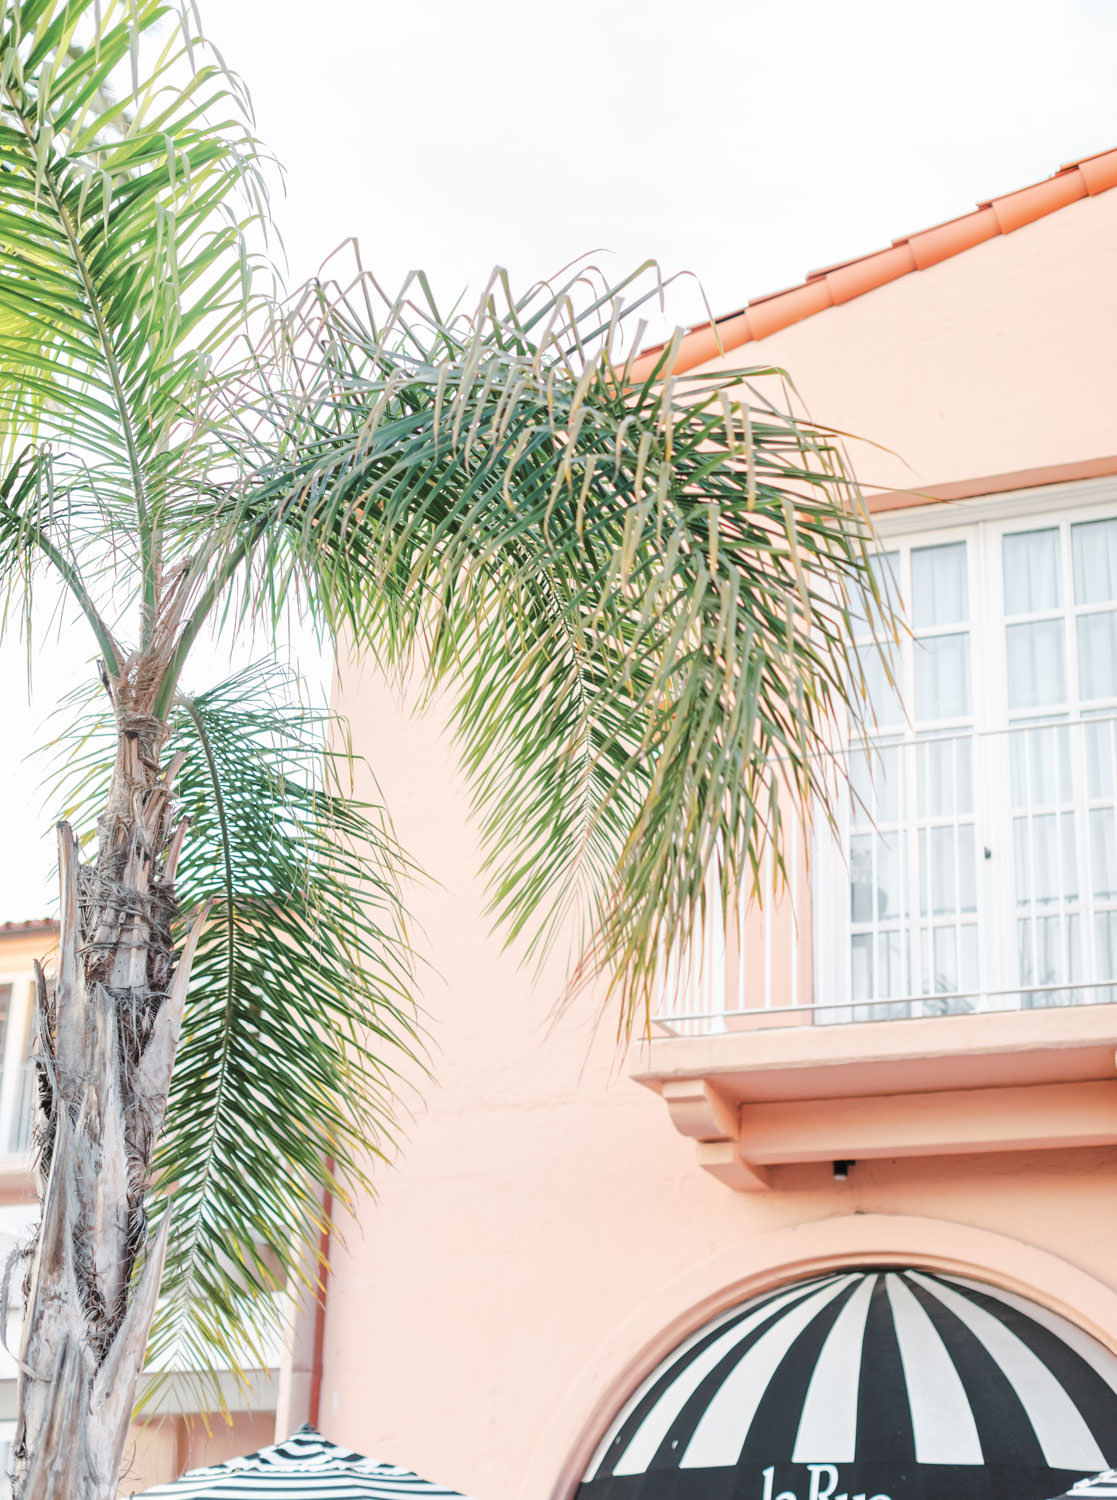 Pink walls surrounded by palm trees and black and white stripe awning for a chic San Diego wedding venue, Intimate Wedding at La Valencia Hotel in La Jolla by Cavin Elizabeth Photography